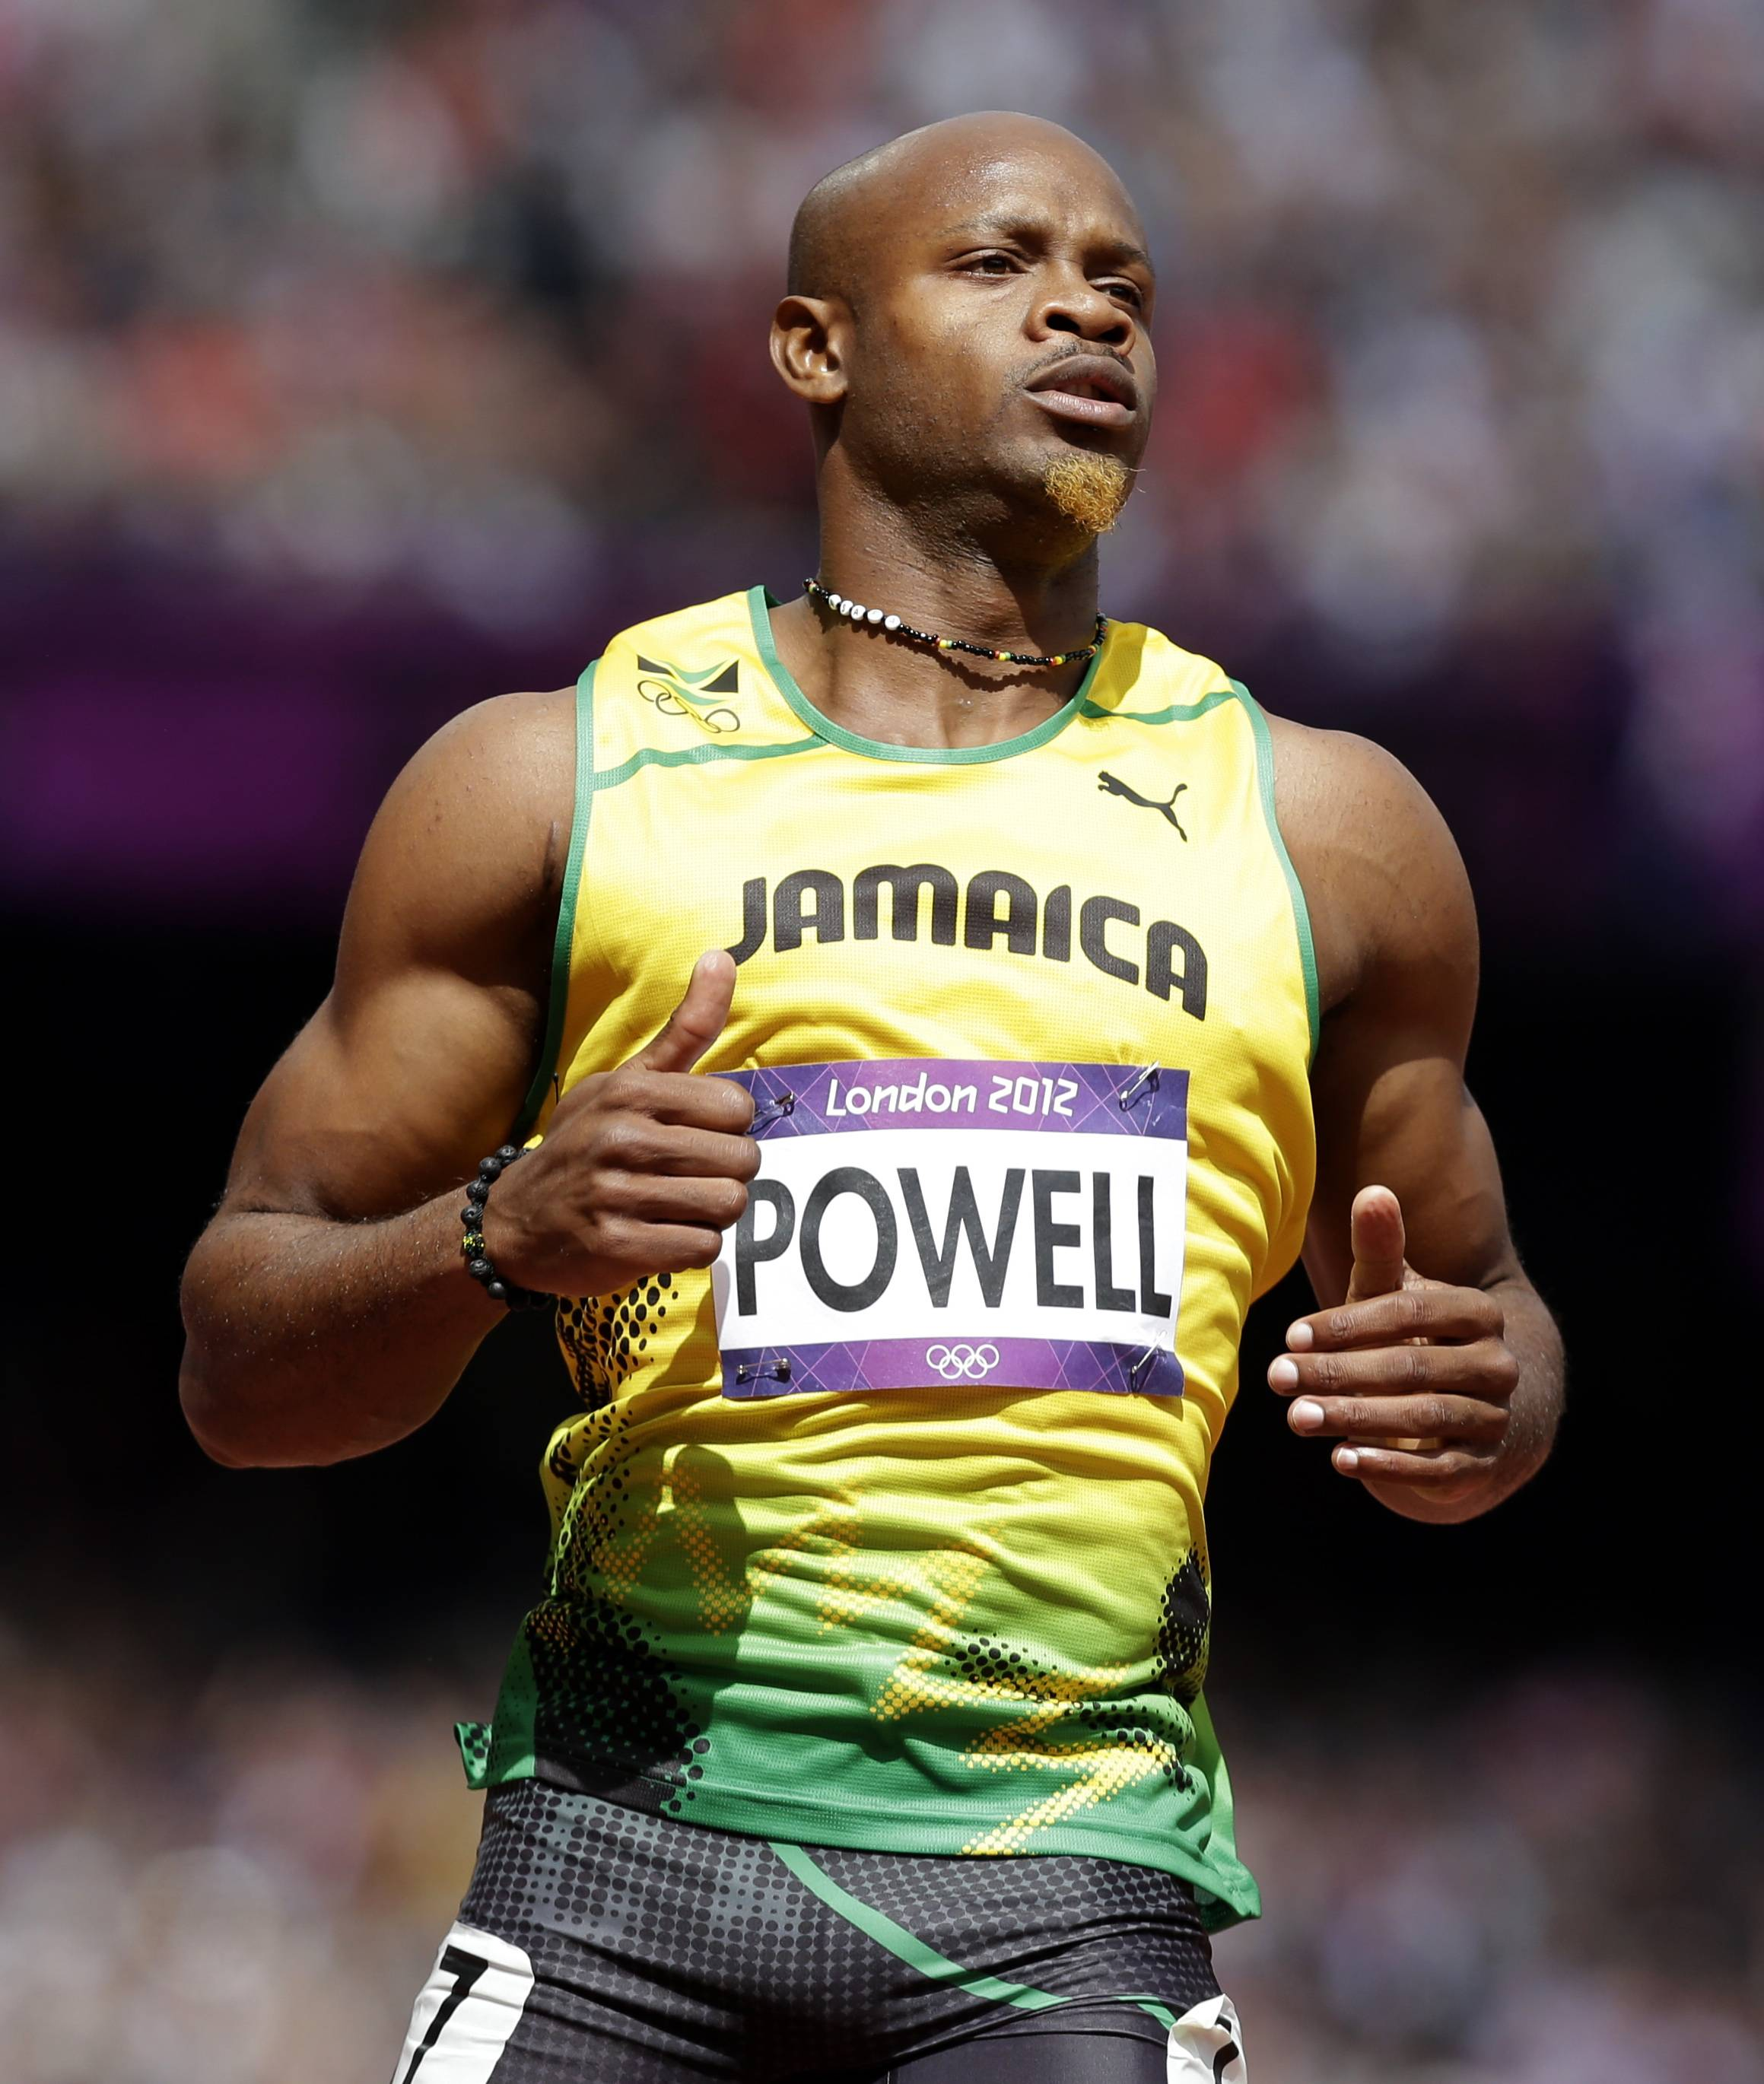 Sprinter Asafa Powell tested positive for the banned stimulant oxilofrone.